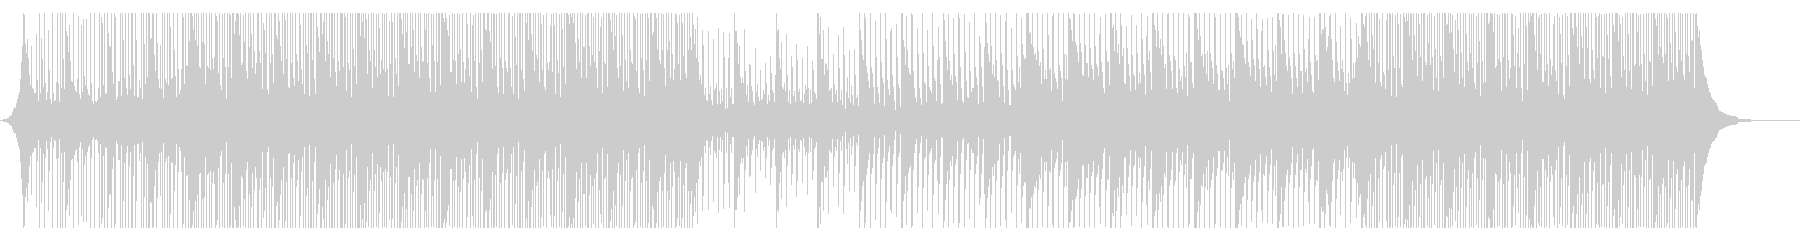 Inspiration for your project's unreproduced waveform